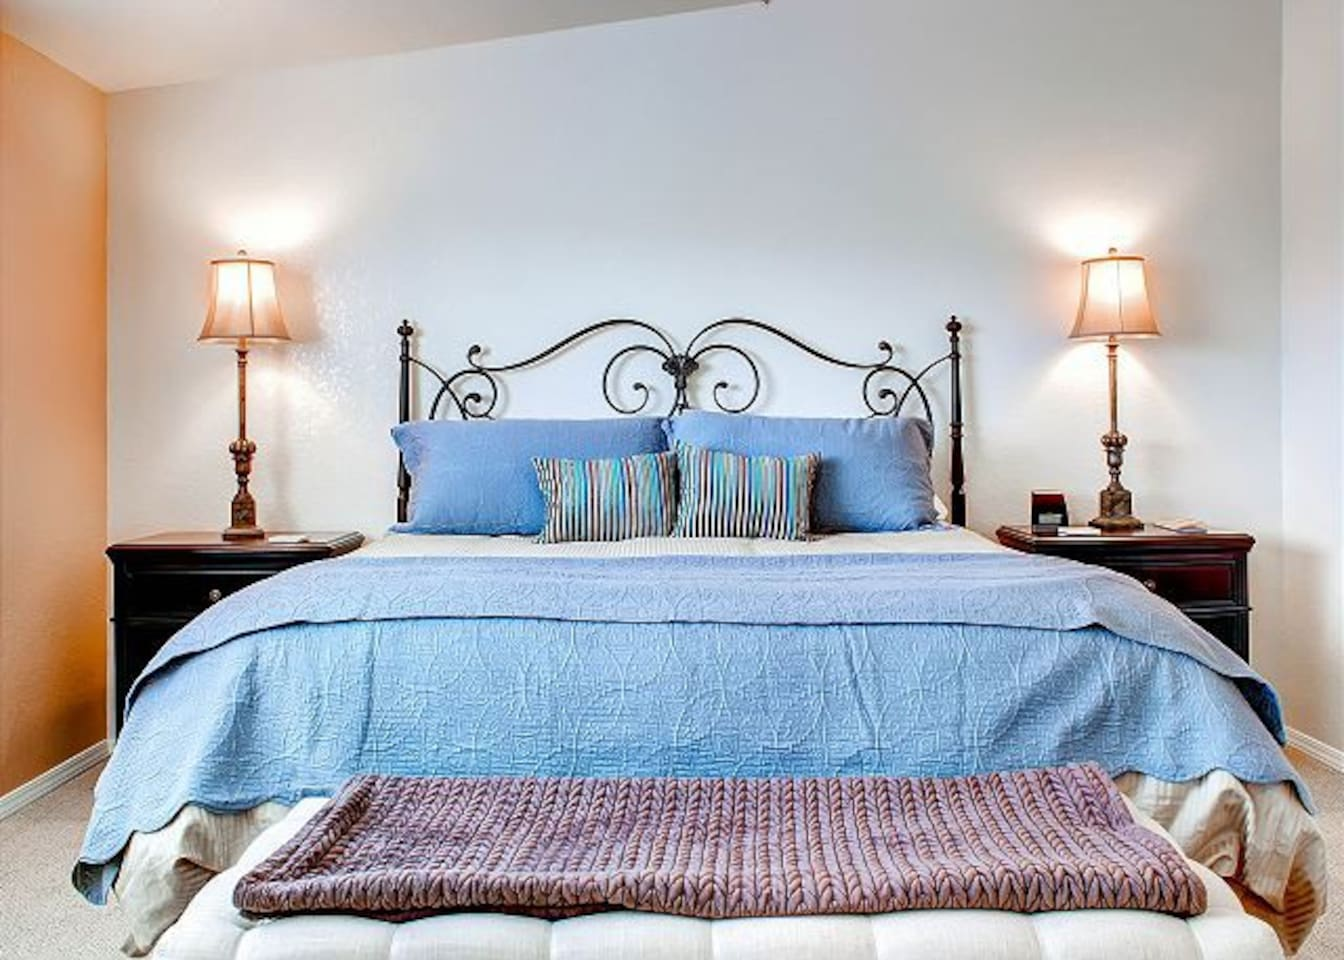 San Marcos Creek Vineyard Crush Pad! - Bed and breakfasts for Rent ...